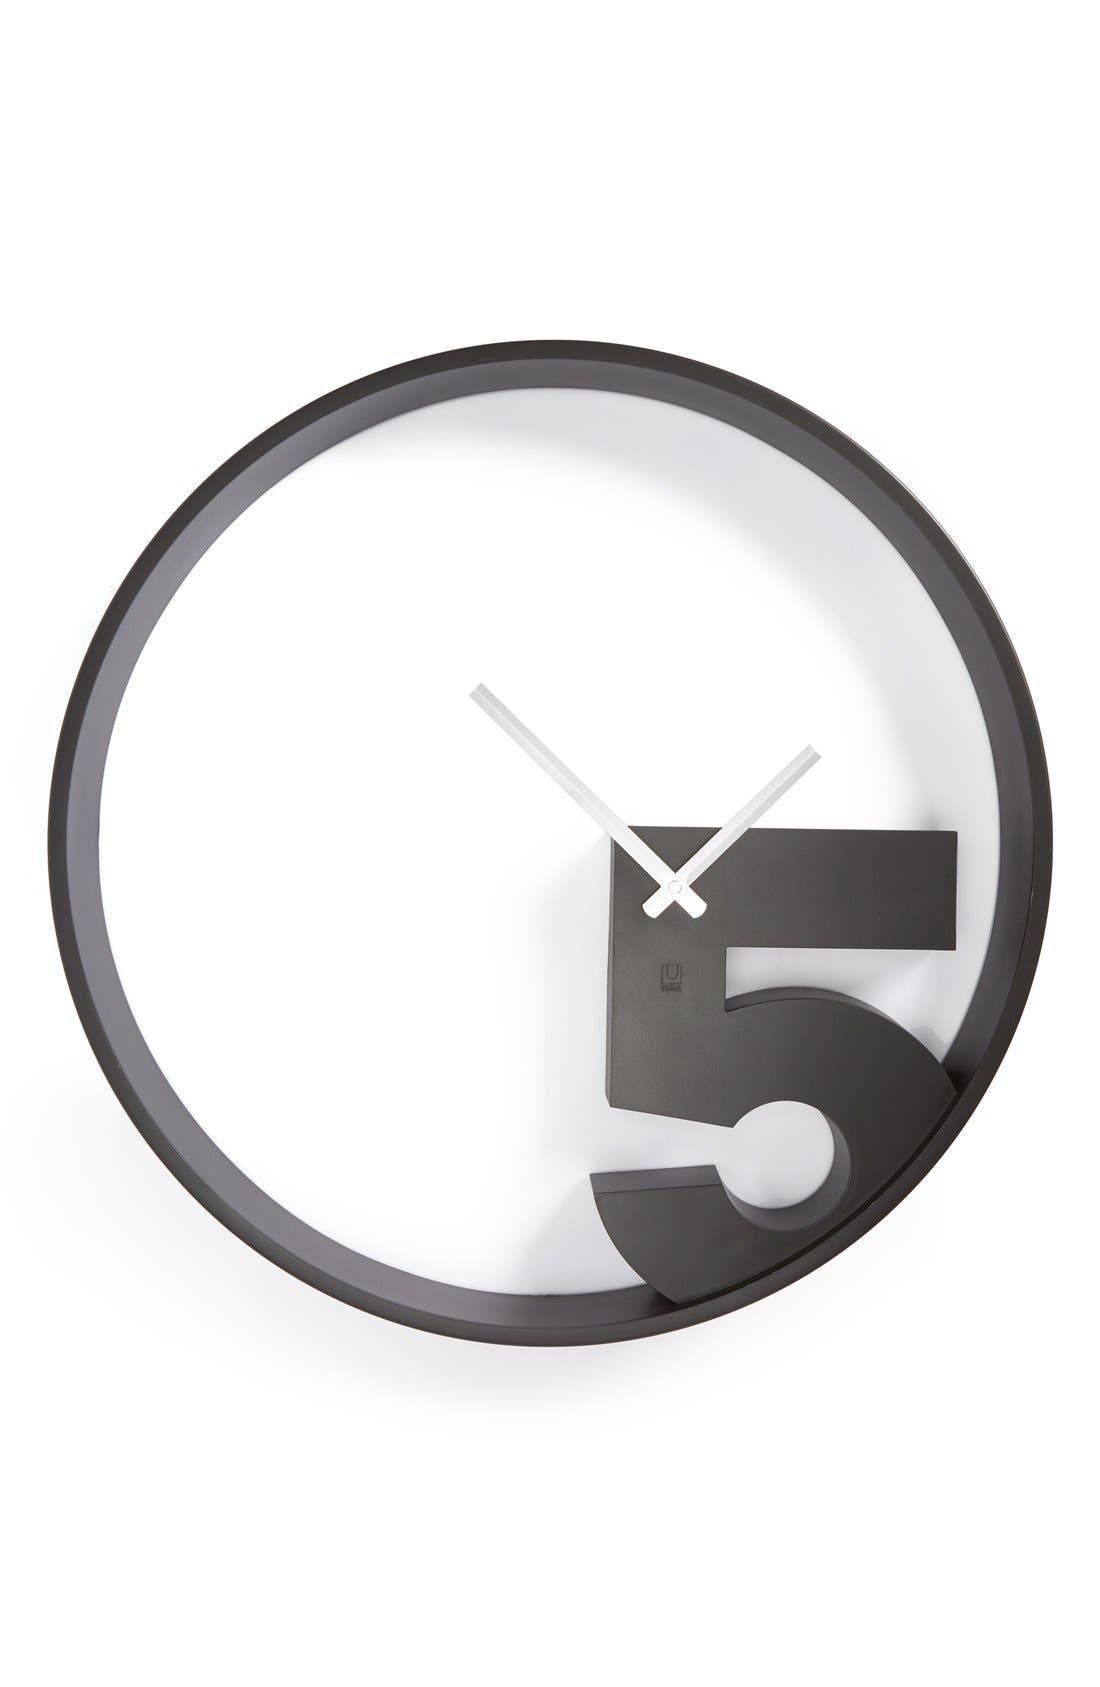 Main Image - Umbra 'Take 5' Wall Clock